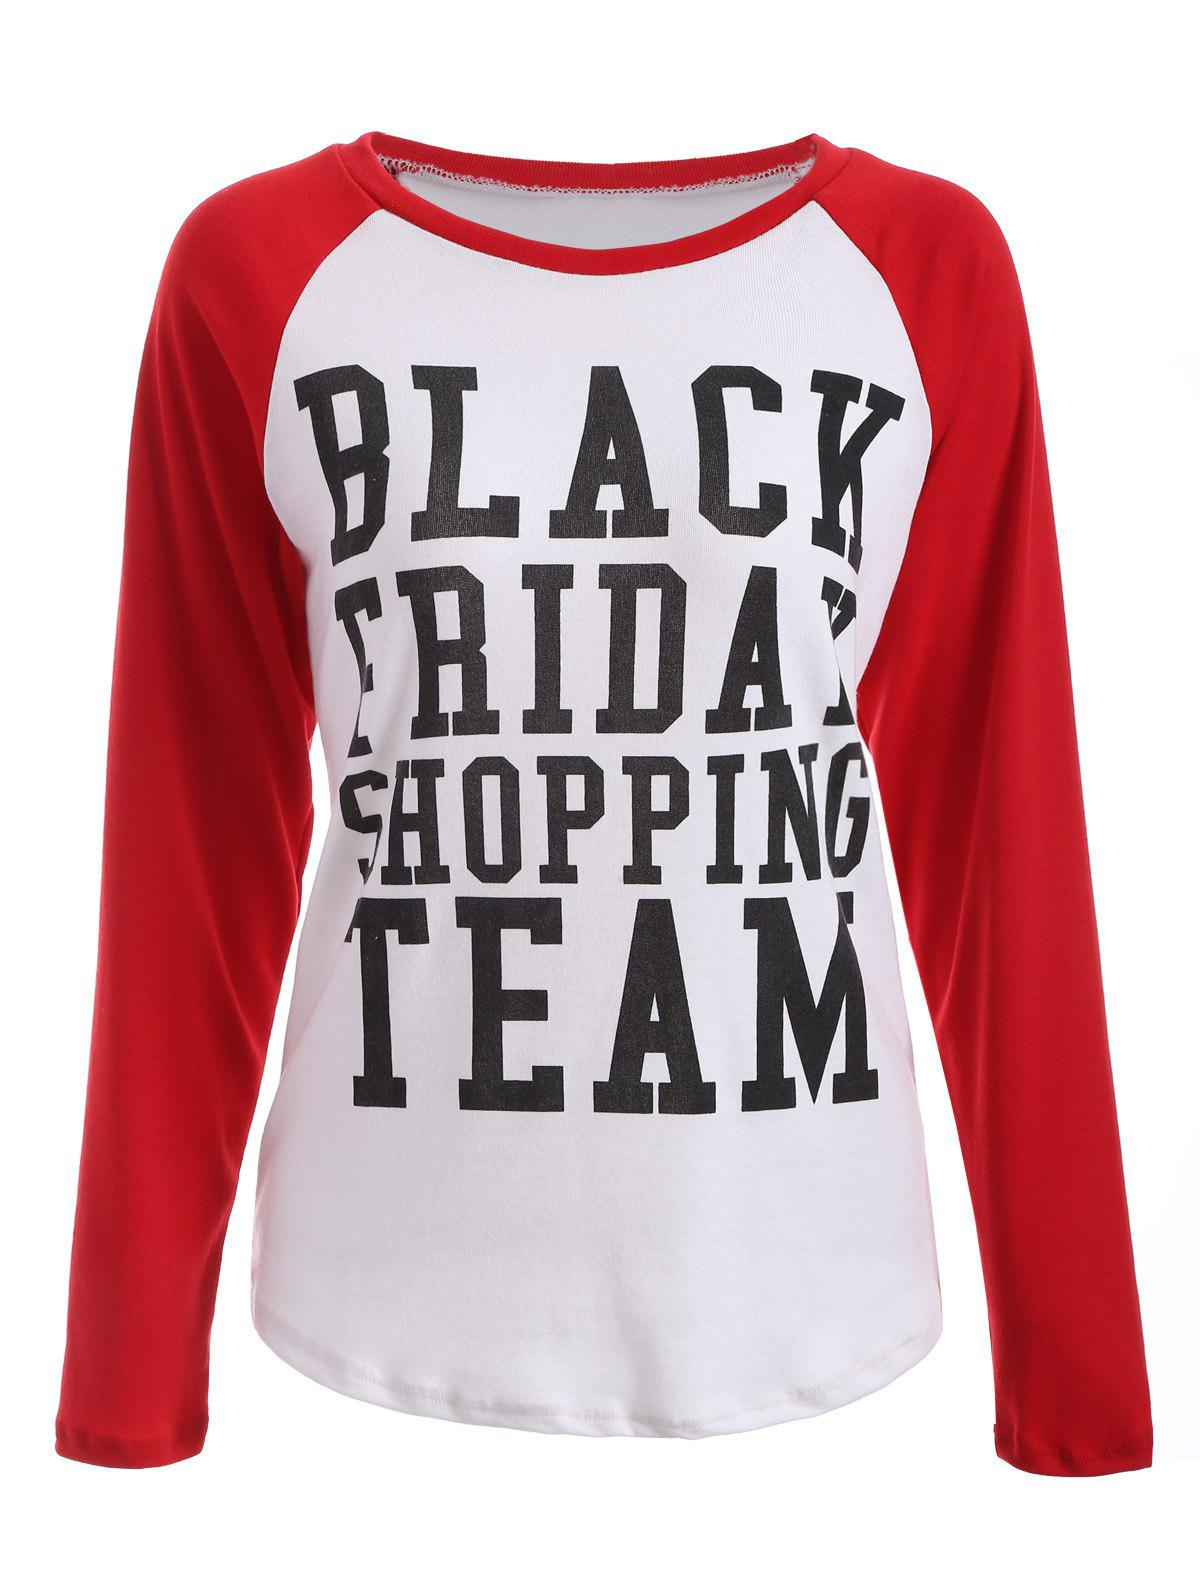 Tee-shirt à manches raglan imprimé Black Friday - Rouge et Blanc M